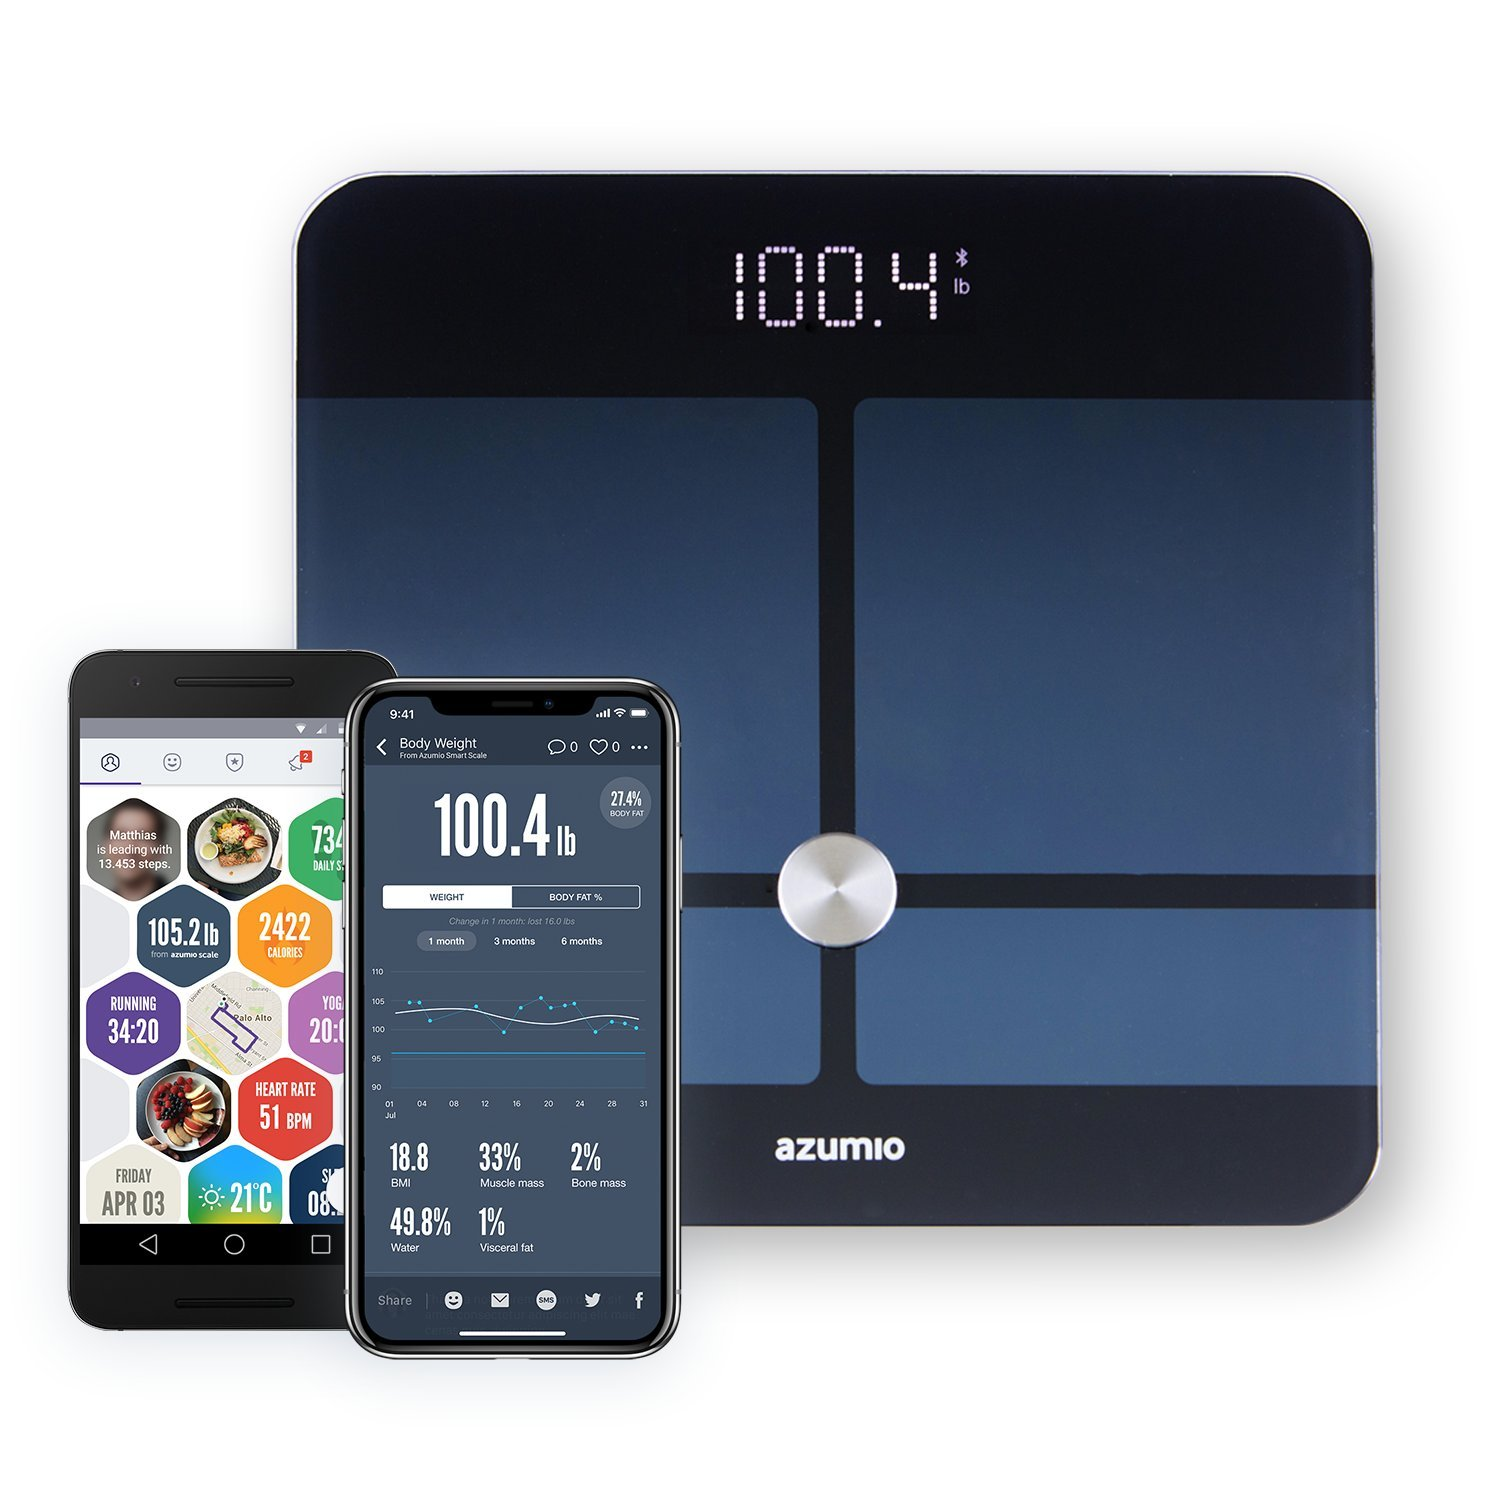 Azumio Bluetooth Digital Smart Scale for Body Weight | 6mm Tempered Glass LED Display Measures Body Fat, Visceral, BMI, BMR, Muscle Mass, Bone Mass Water Weight in KG or LB | iOS & Android Compatible